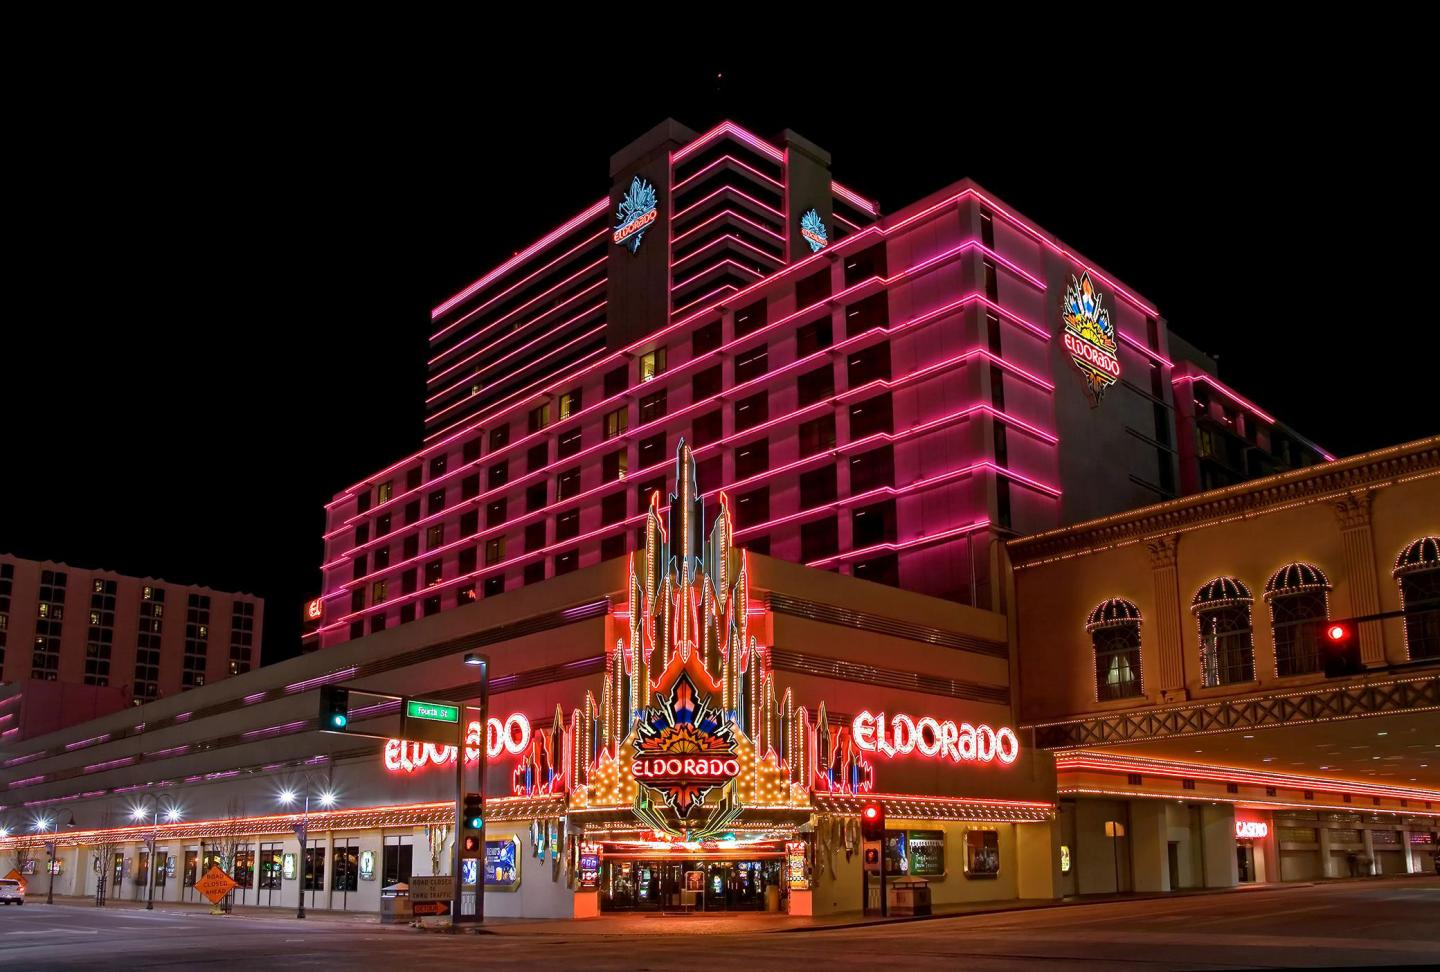 Eldorado casino resort